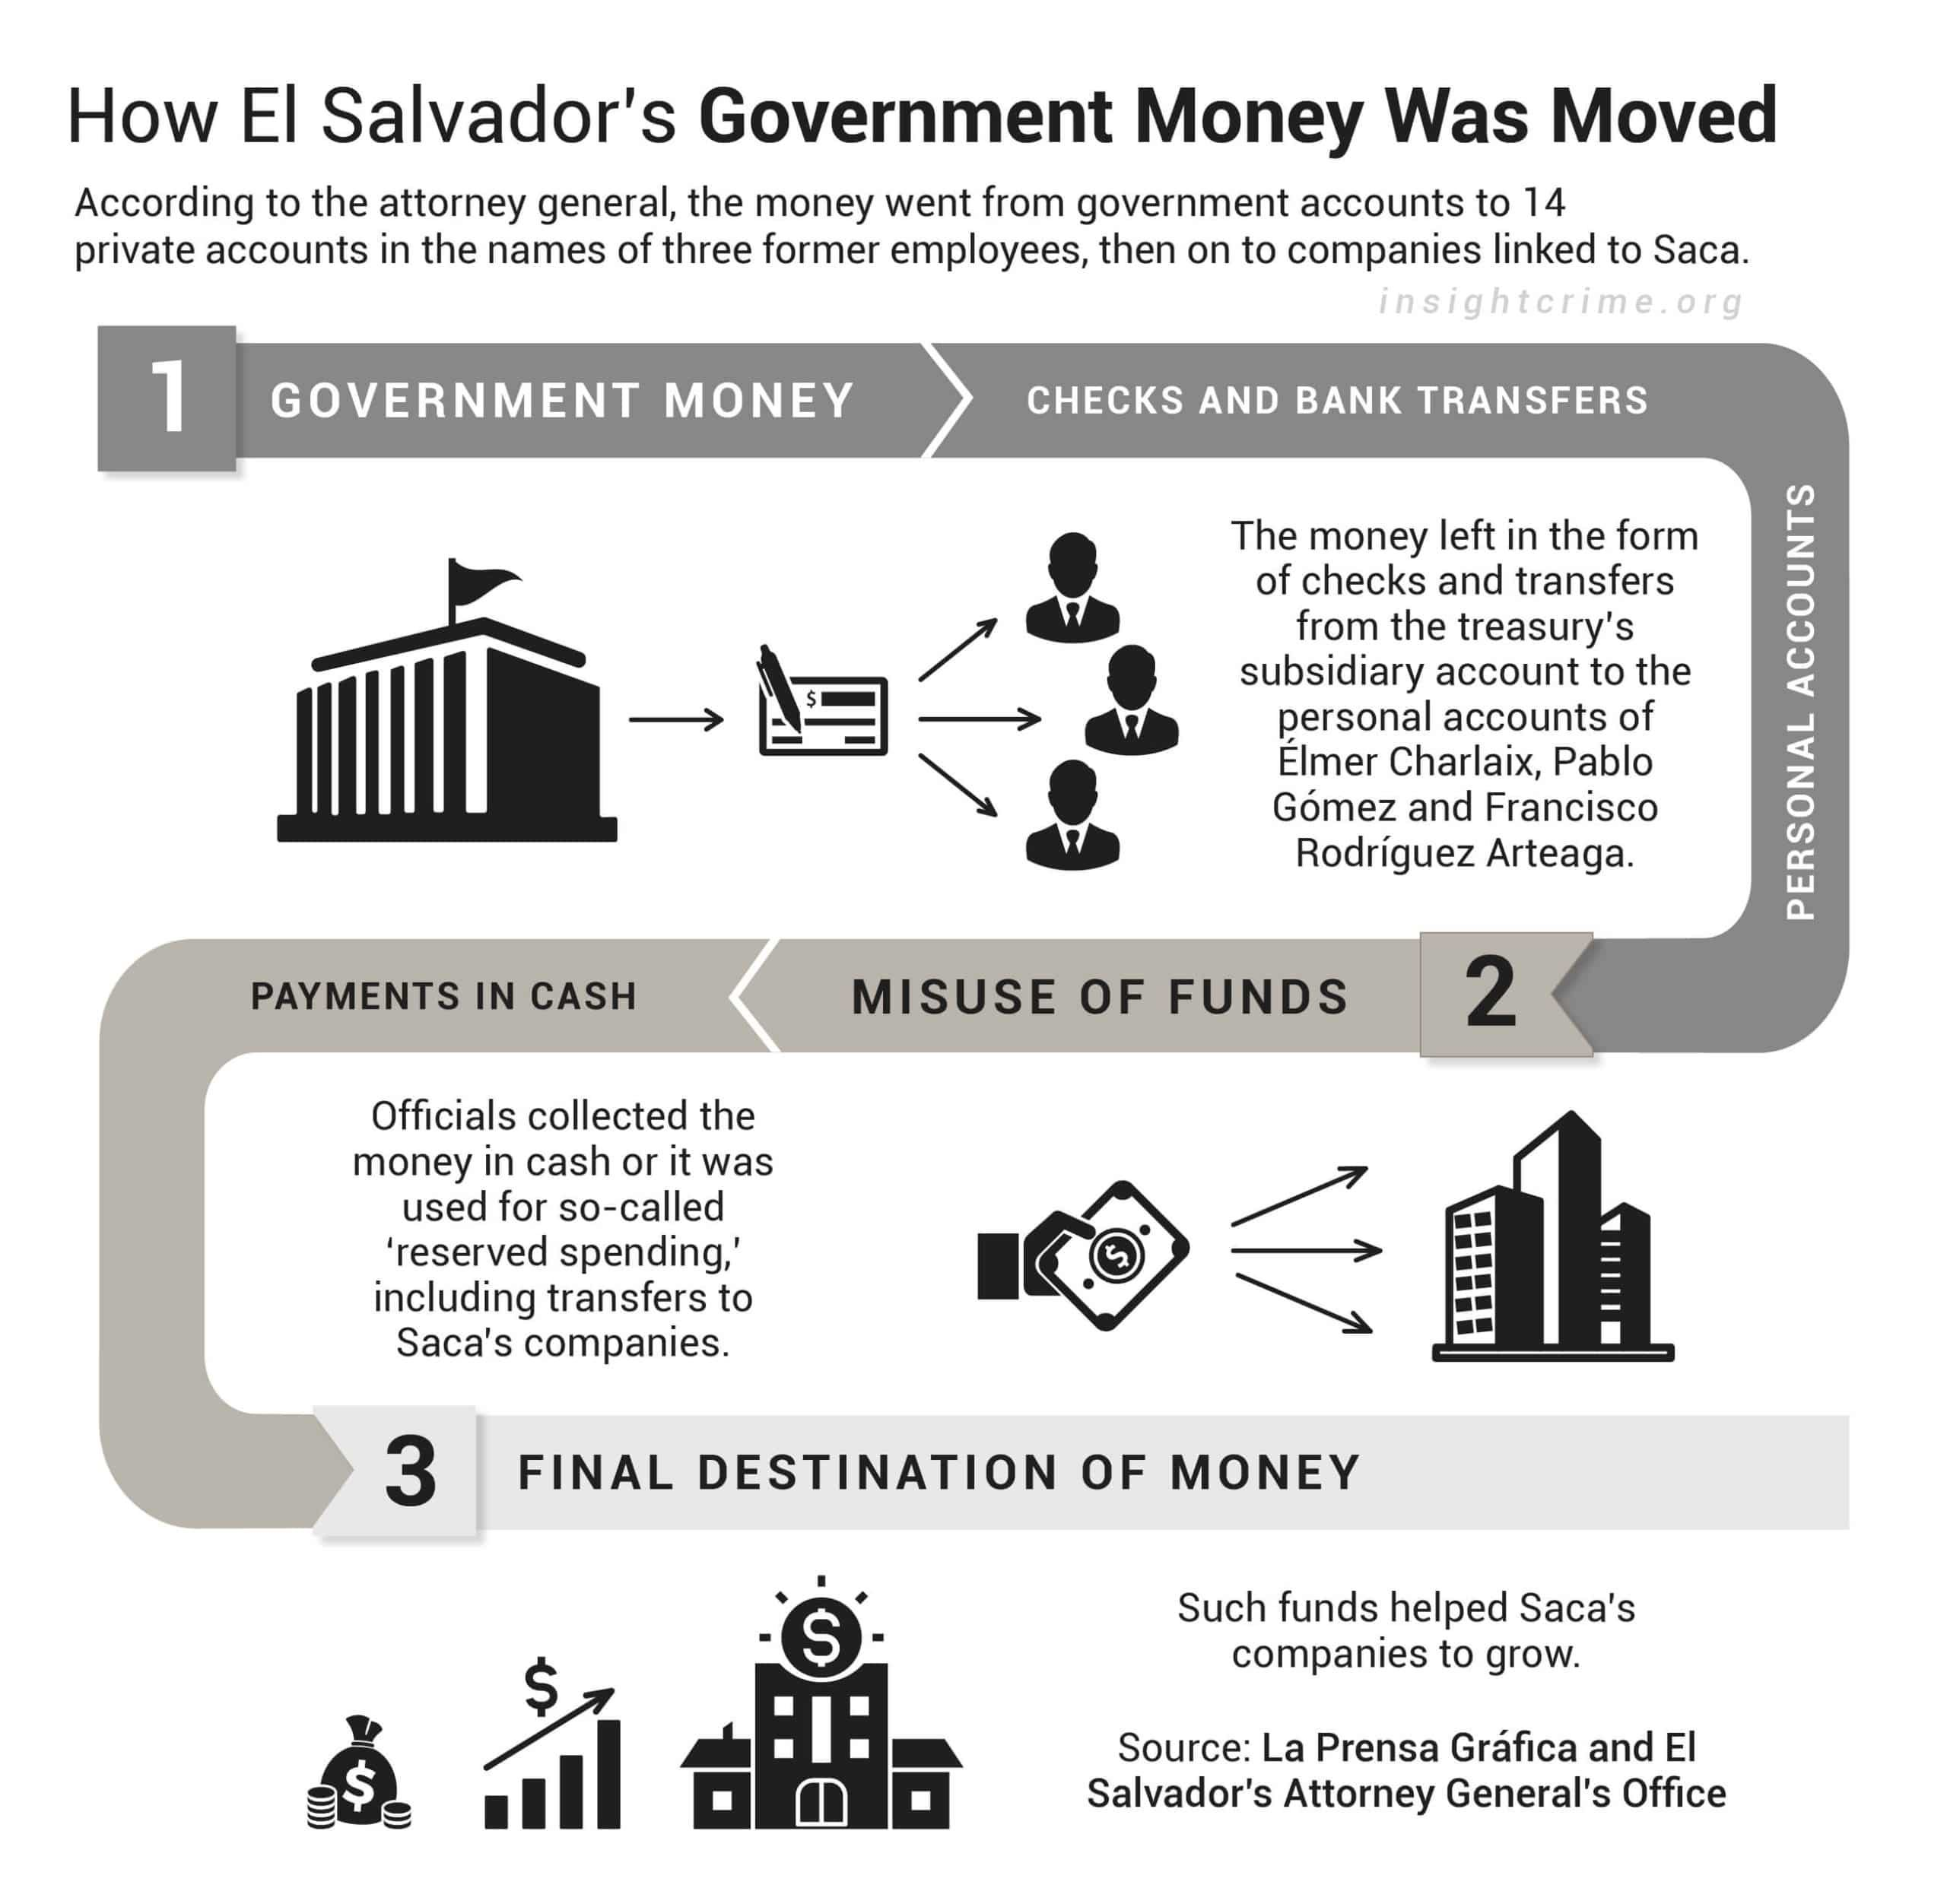 How El Salvador's former president Antonio Saca pilfered $300 million in public funds.